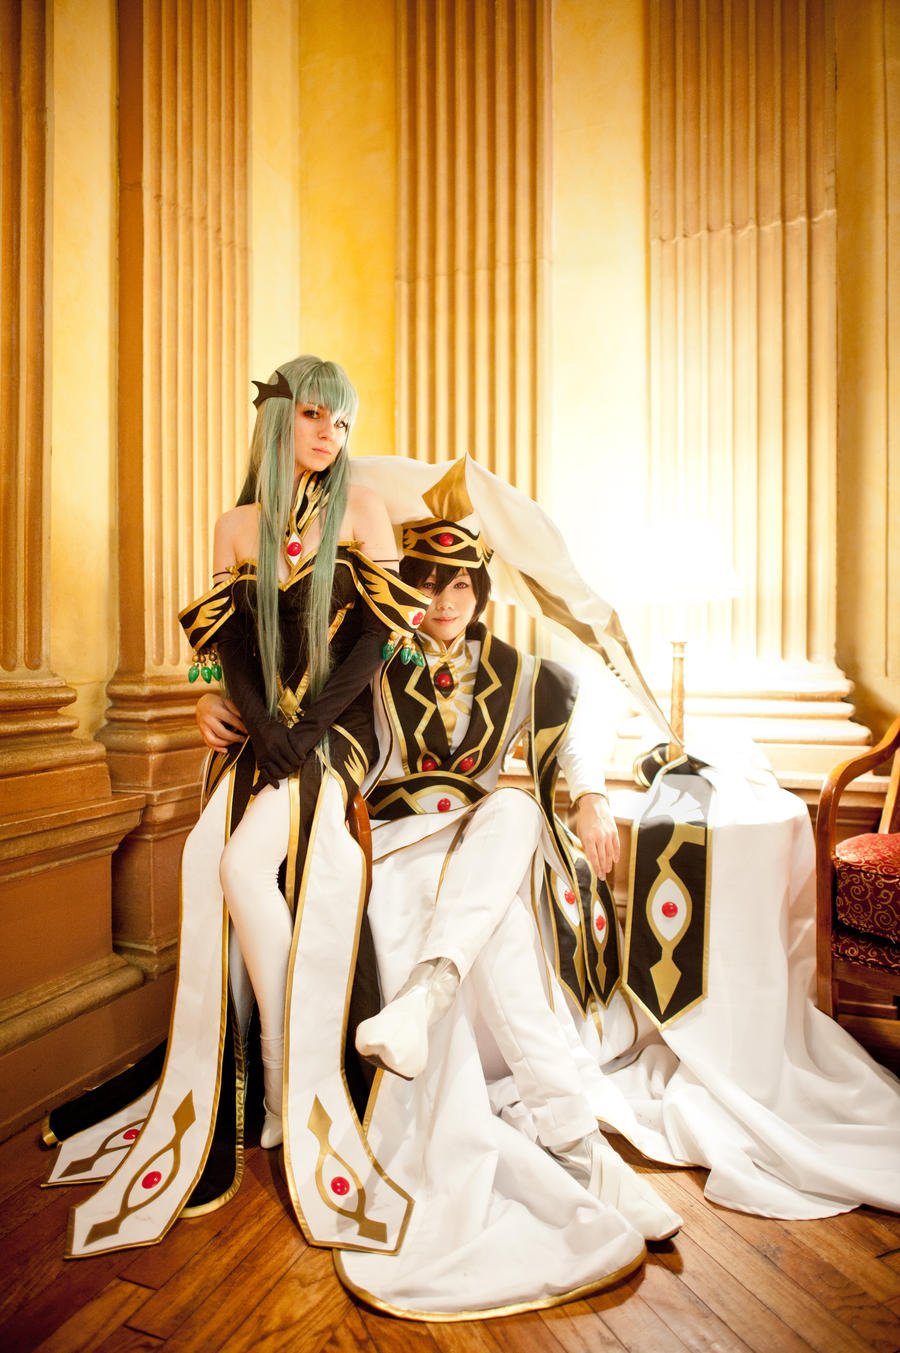 Emperor Dismissed by electric-lady